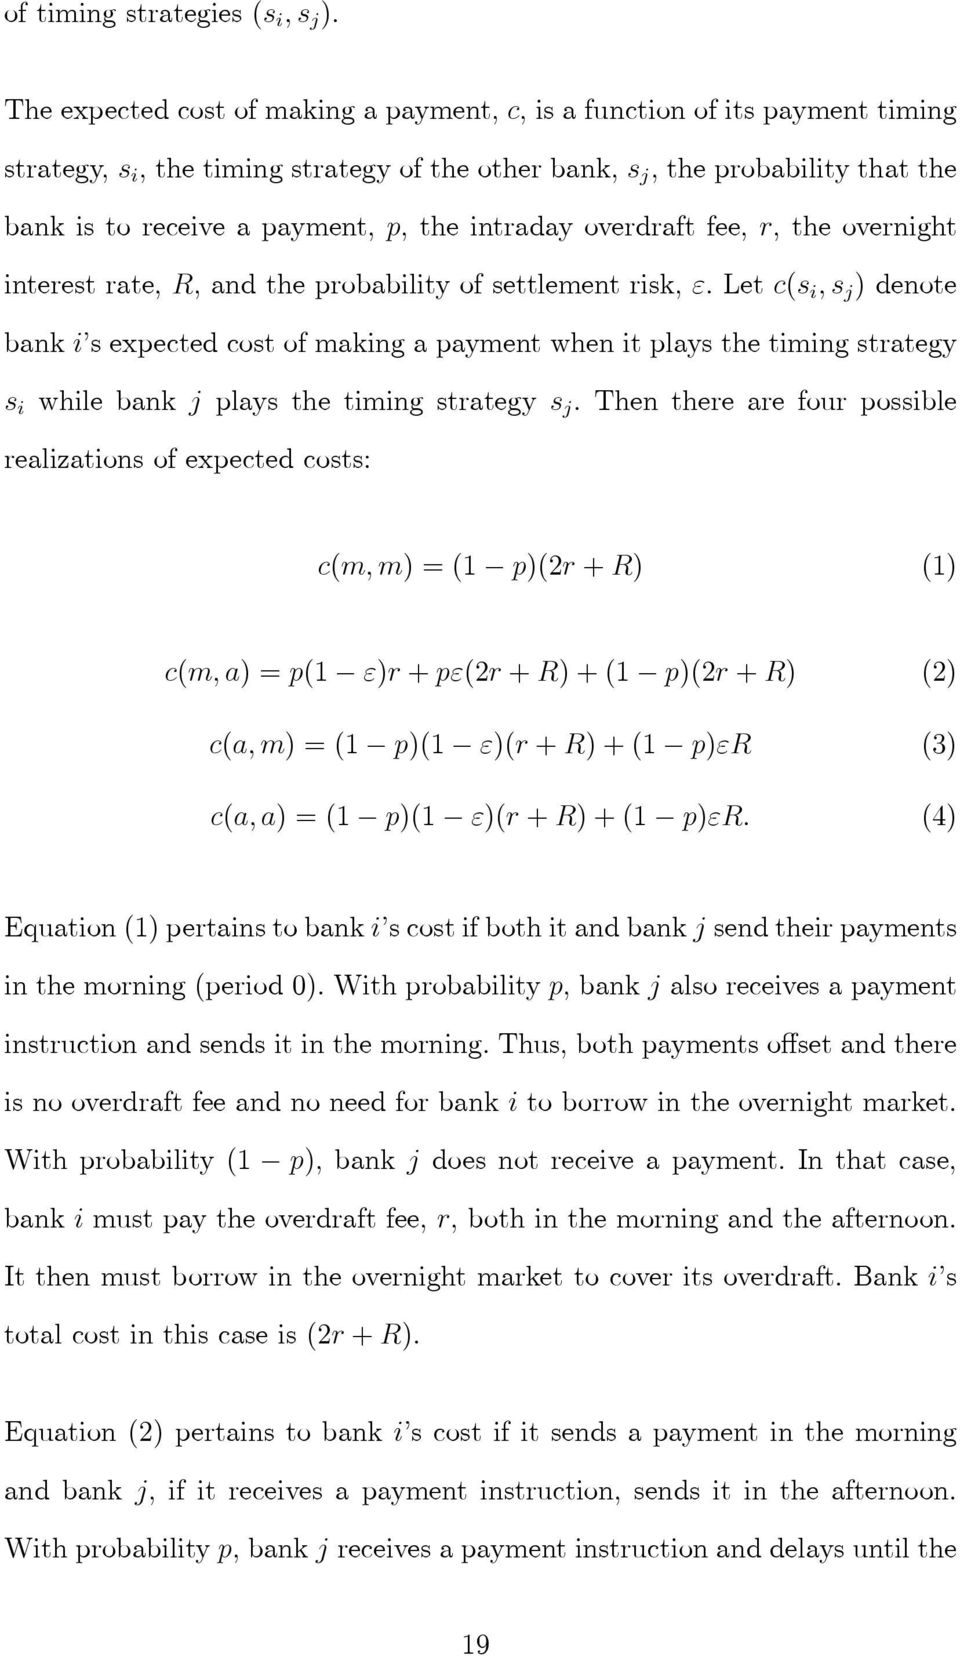 "intraday overdraft fee, r, the overnight interest rate, R, and the probability of settlement risk, ""."